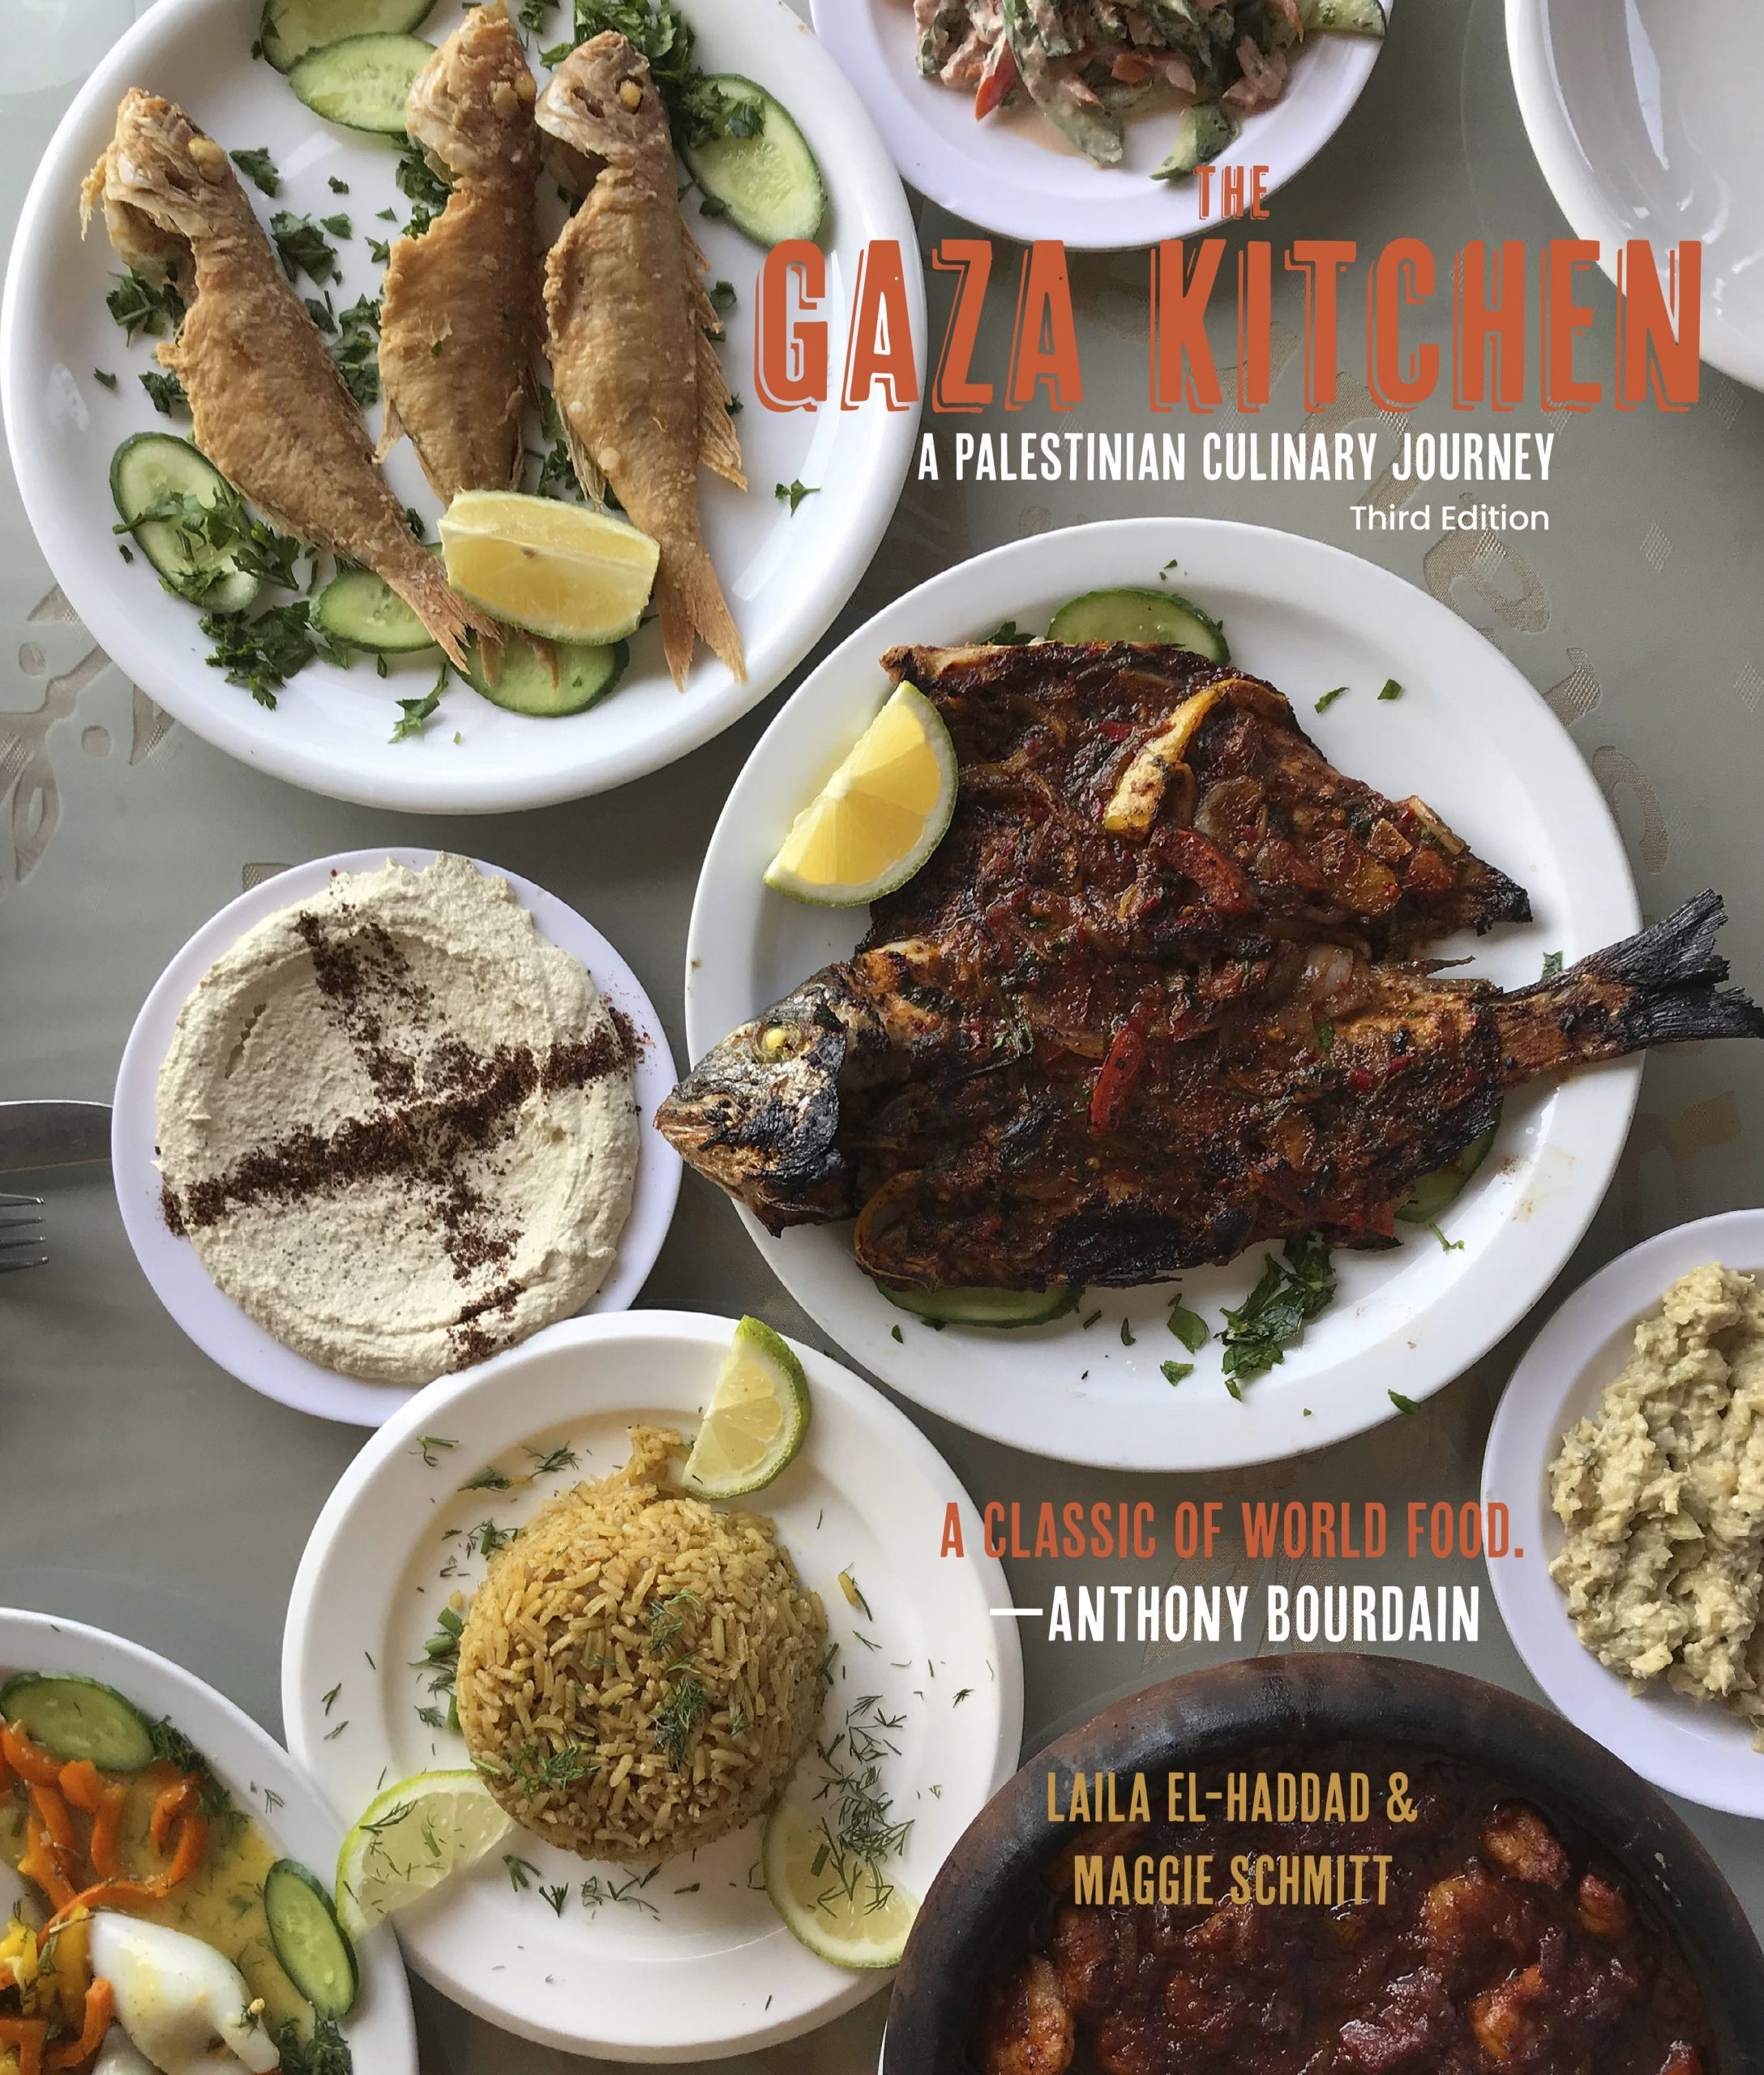 The Gaza Kitchen, 3rd Edition